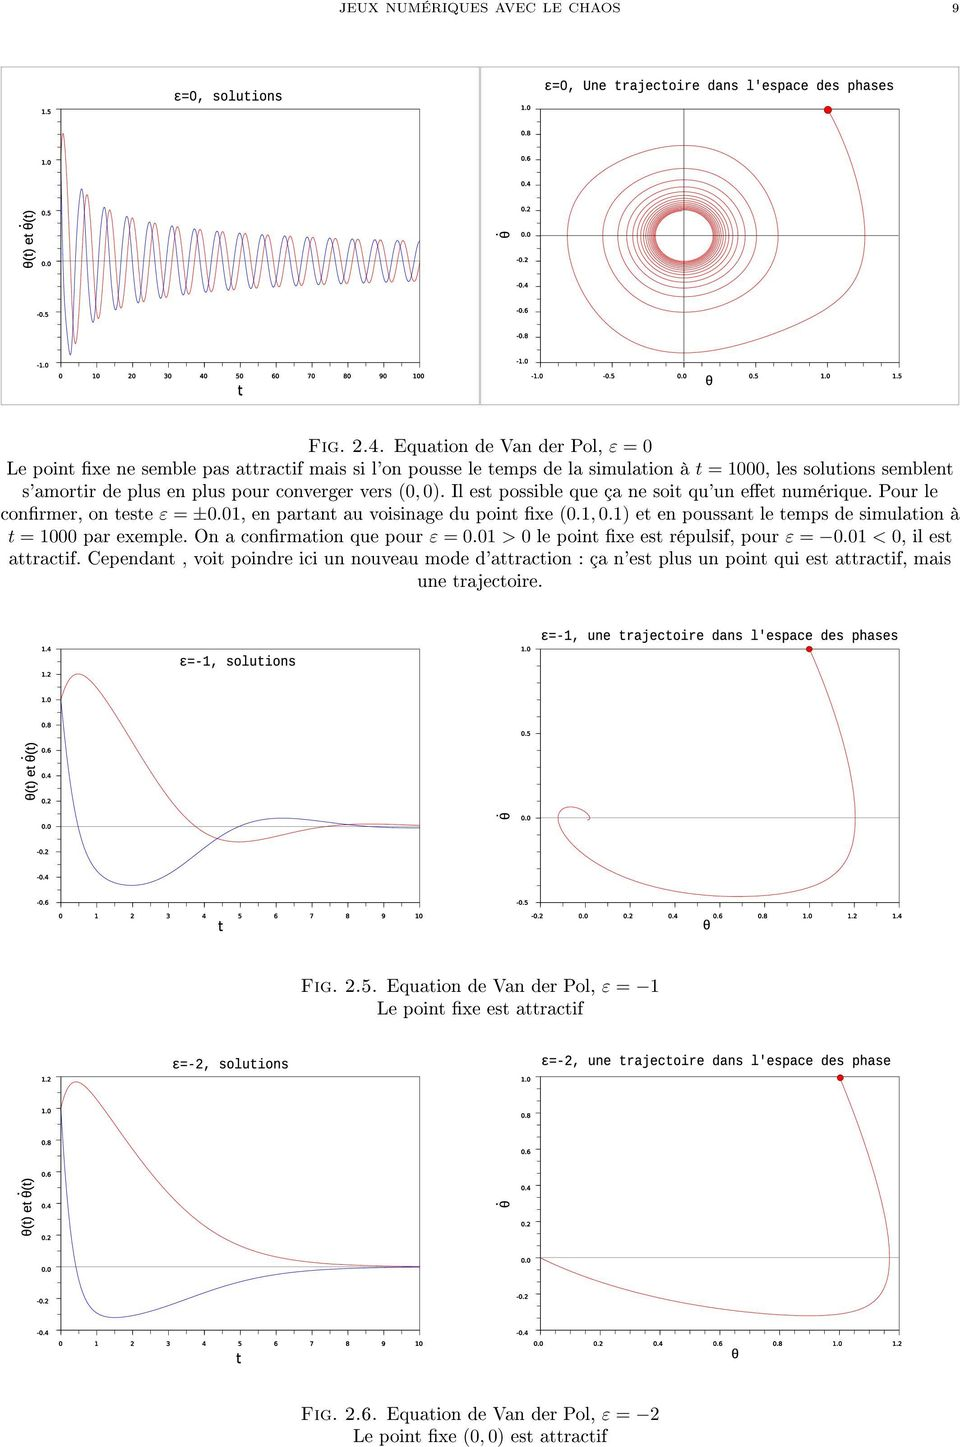 Il est possible que ça ne soit qu'un eet numérique. Pour le conrmer, on teste ε = ±0.01, en partant au voisinage du point xe 0.1, 0.1) et en poussant le temps de simulation à t = 1000 par exemple.